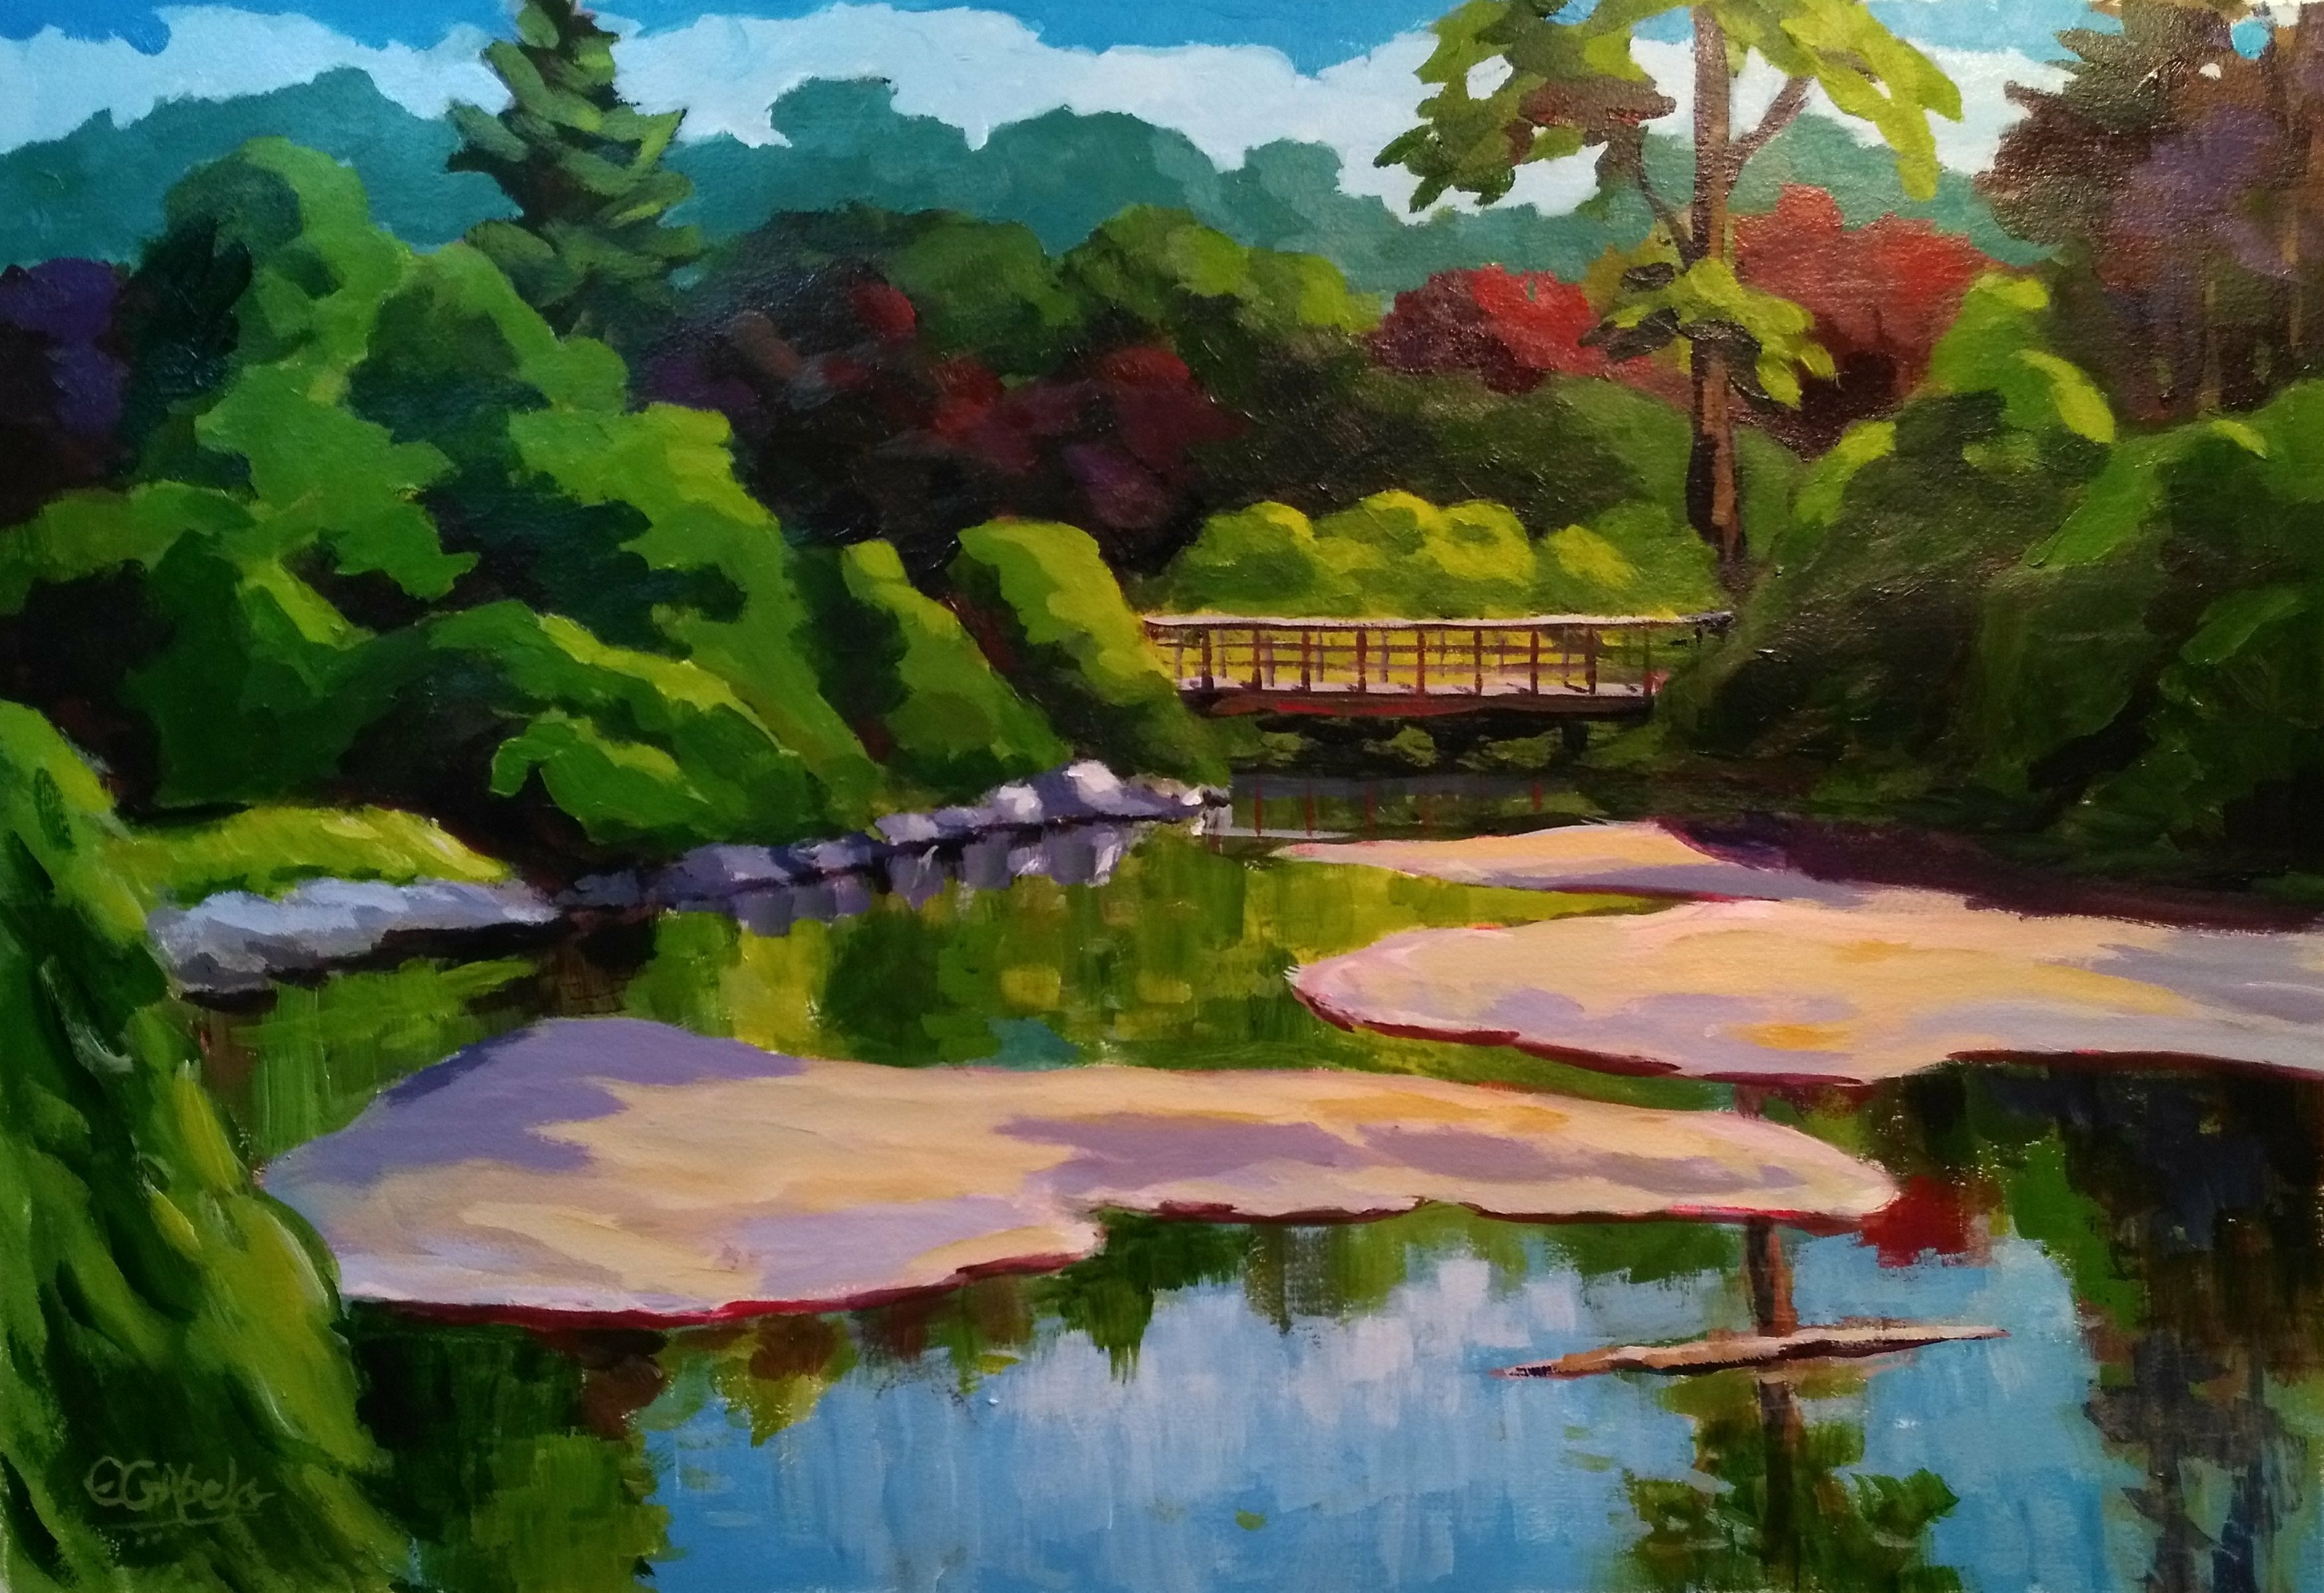 Edward Abela; Edwards Gardens Toronto, 2018, Original Painting Acrylic, 27 x 18 inches. Artwork description: 241 Acrylic painting on watercolour paper of beautiful Edwards Gardens, in Toronto, Ontario...